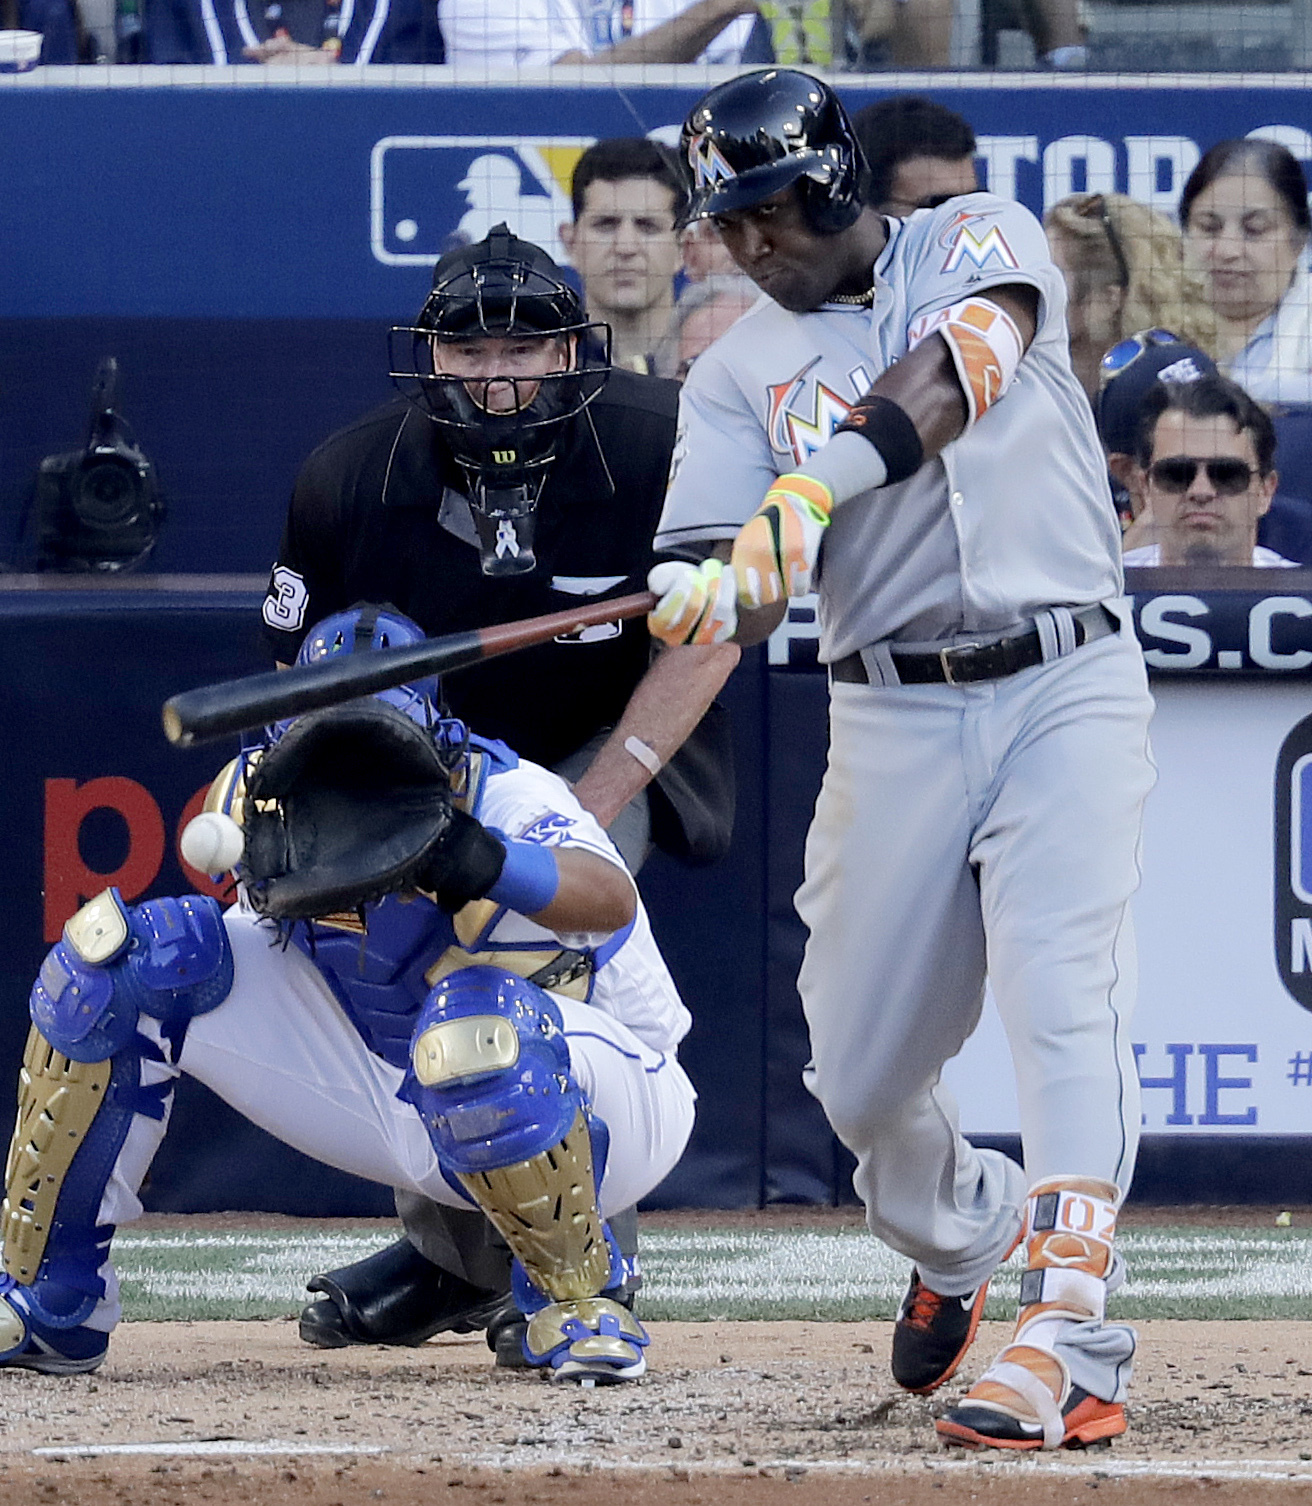 National League's Marcell Ozuna, of the Miami Marlins, hits an RBI single during the fourth inning of the MLB baseball All-Star Game, Tuesday, July 12, 2016, in San Diego. (AP Photo/Jae C. Hong)